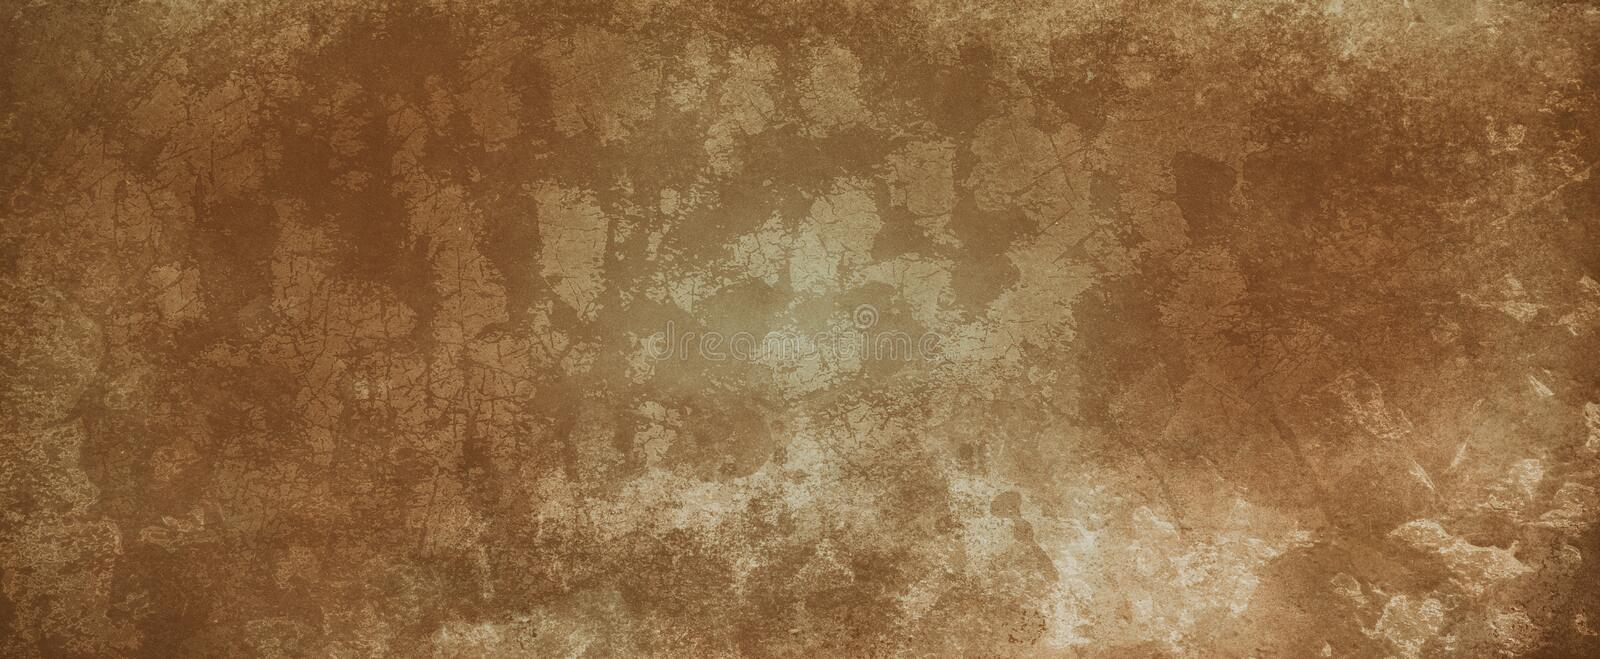 Brown texture background with vintage grunge and old antique design, damaged stained and distressed earthy dark and light brown co stock photography